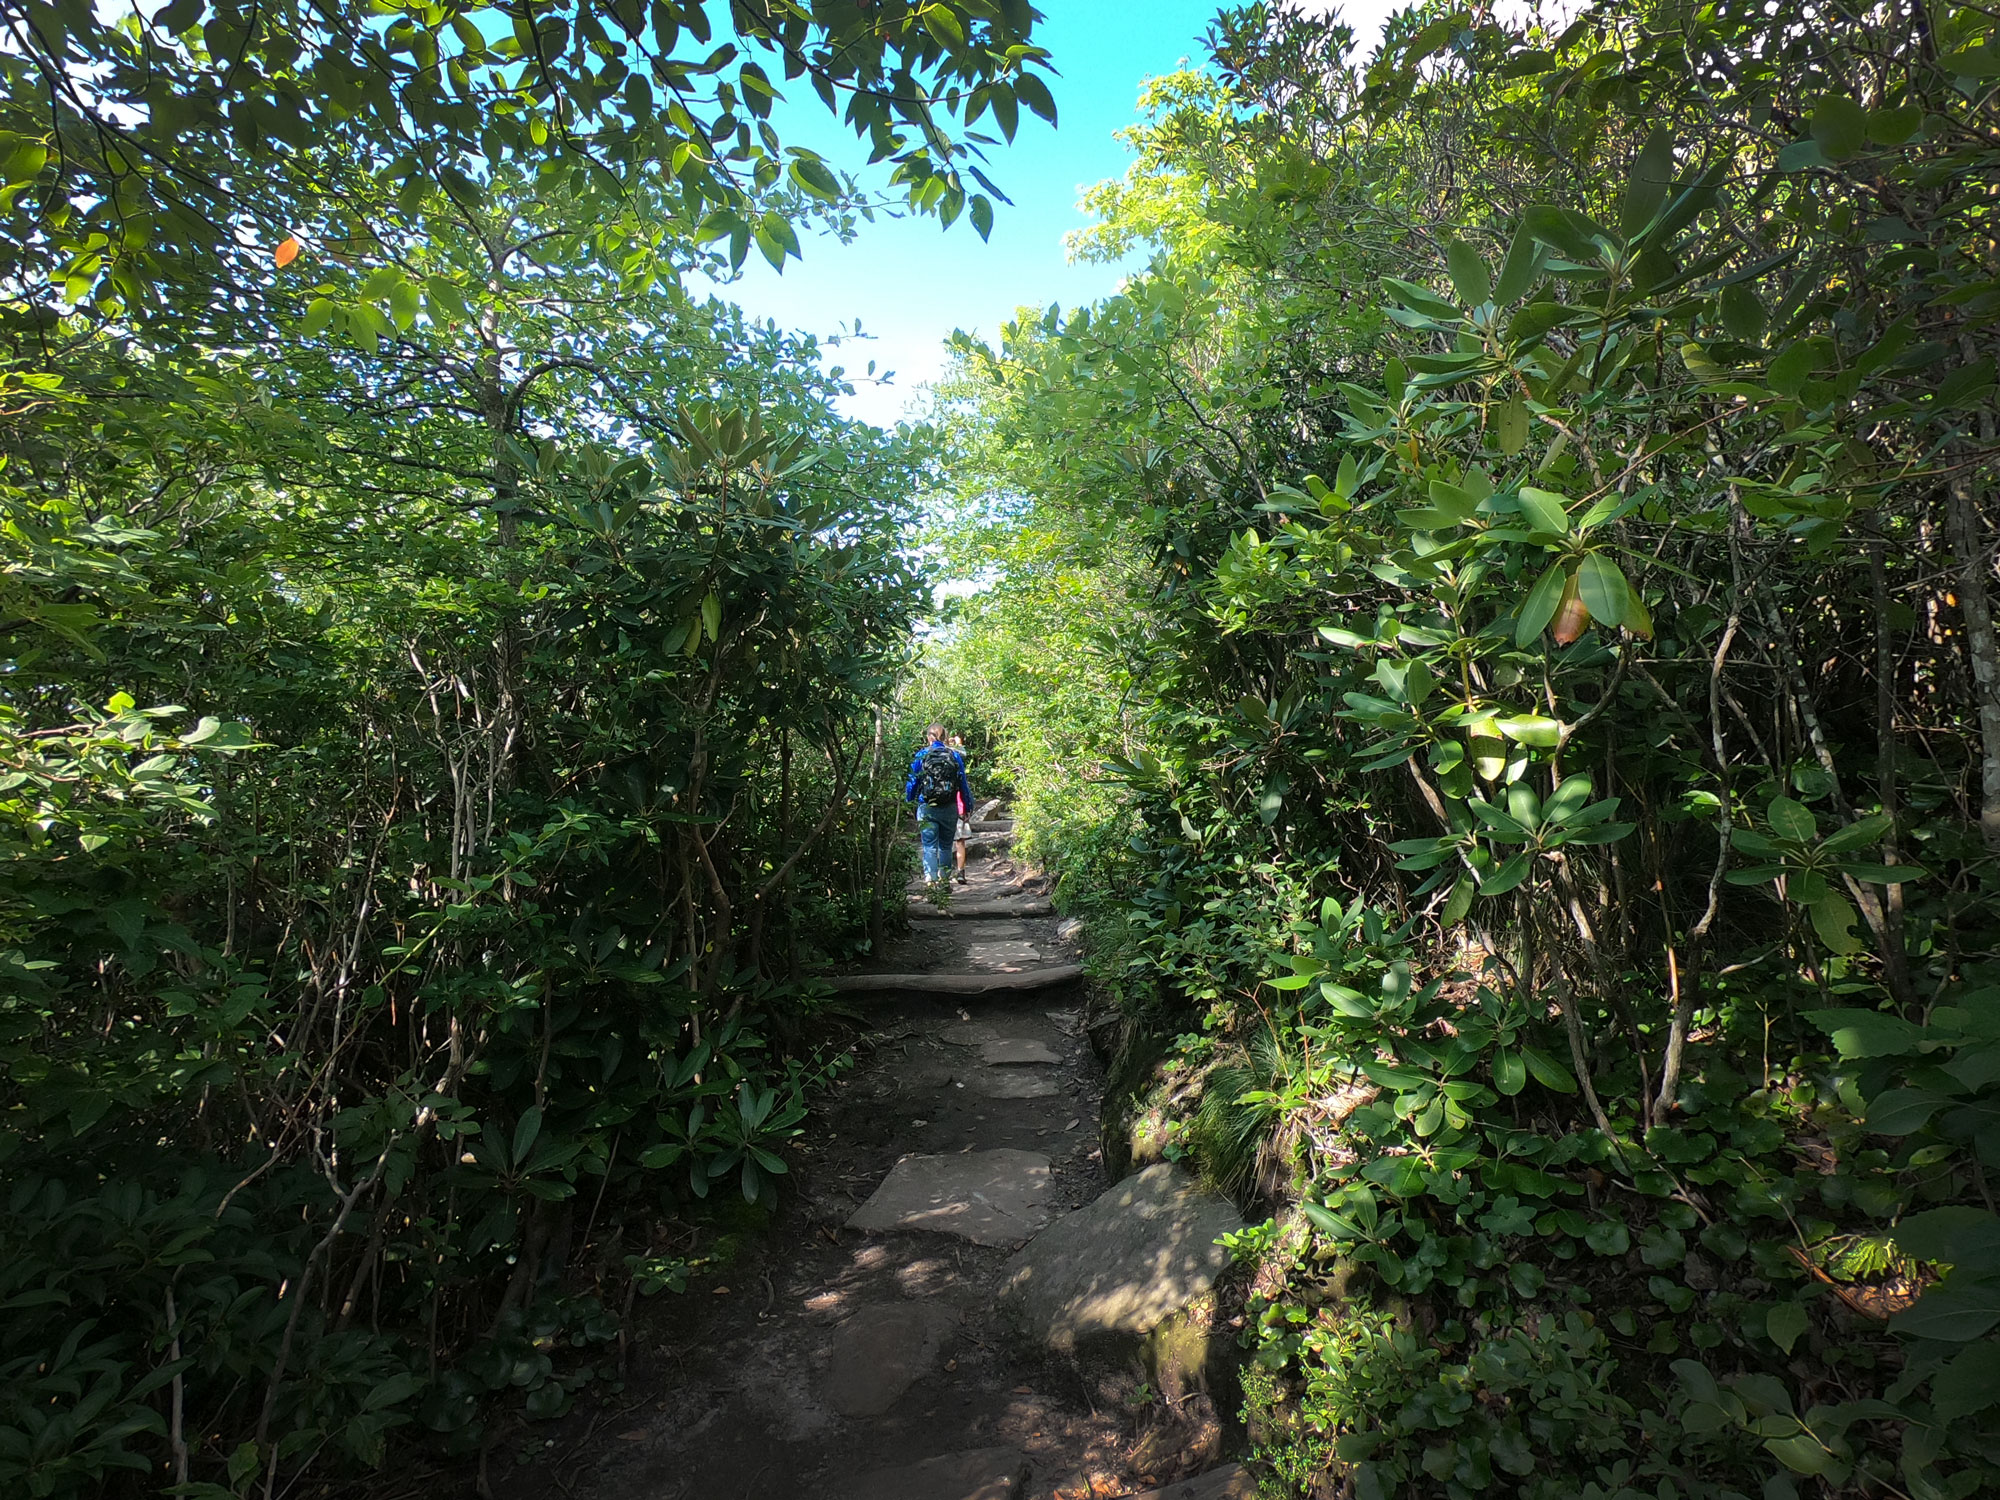 Hiking through the rhododendron tunnels on Rough Ridge Trail, off Blue Ridge Parkway, North Carolina